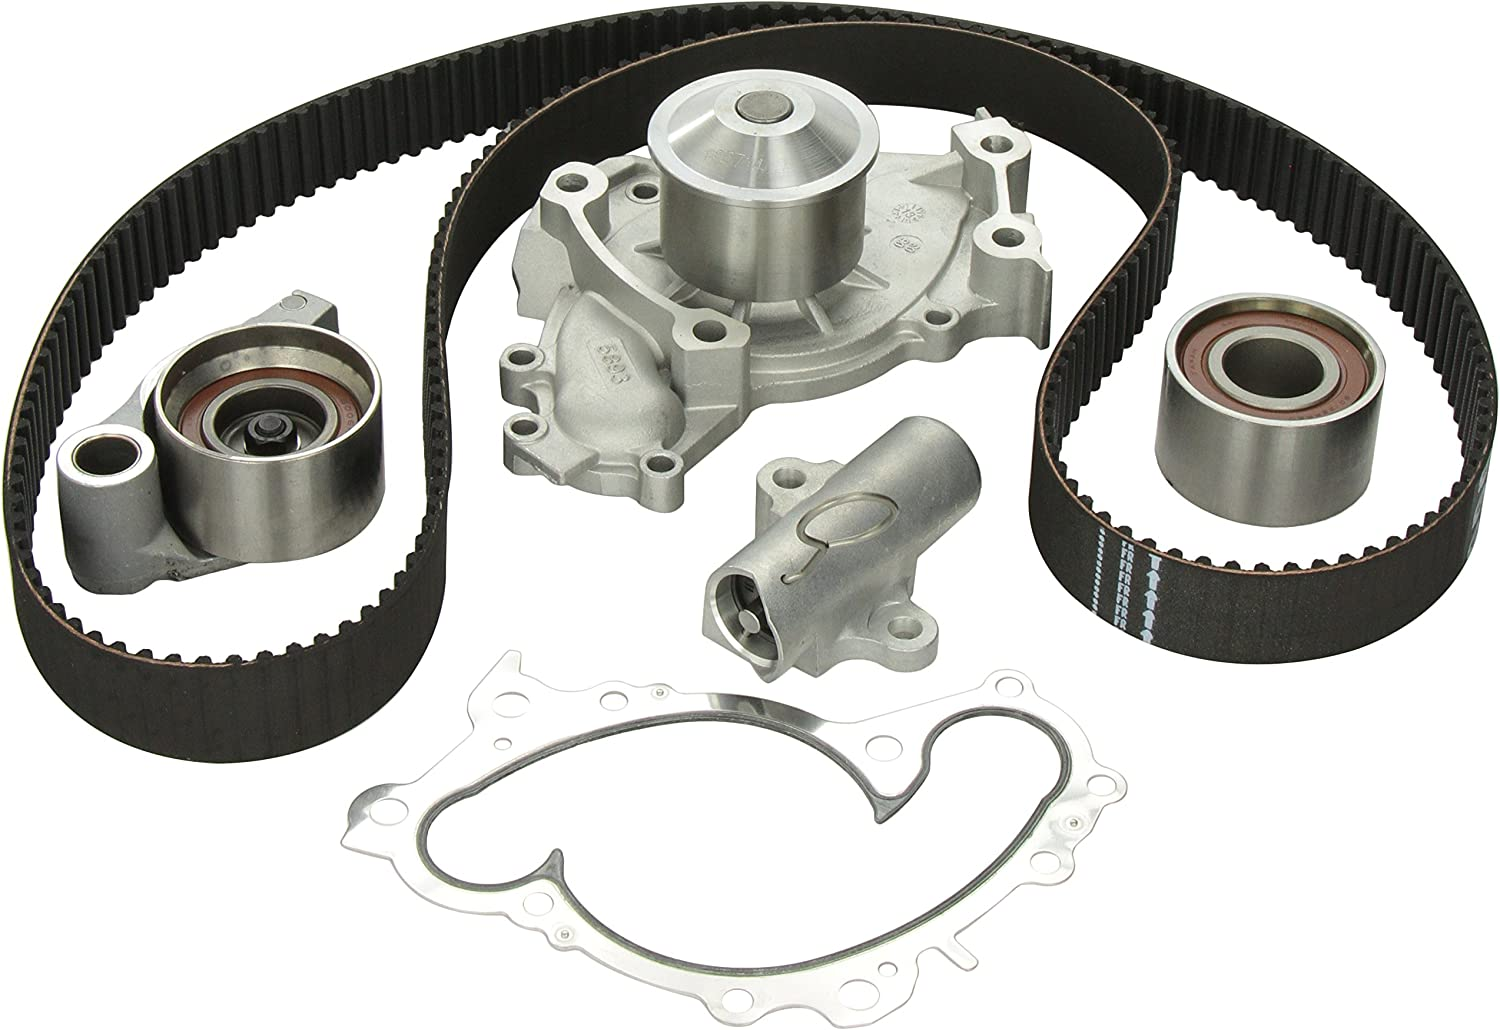 Online Automotive TBWPSETOL16 6001 Timing Belt Kit with Water Pump